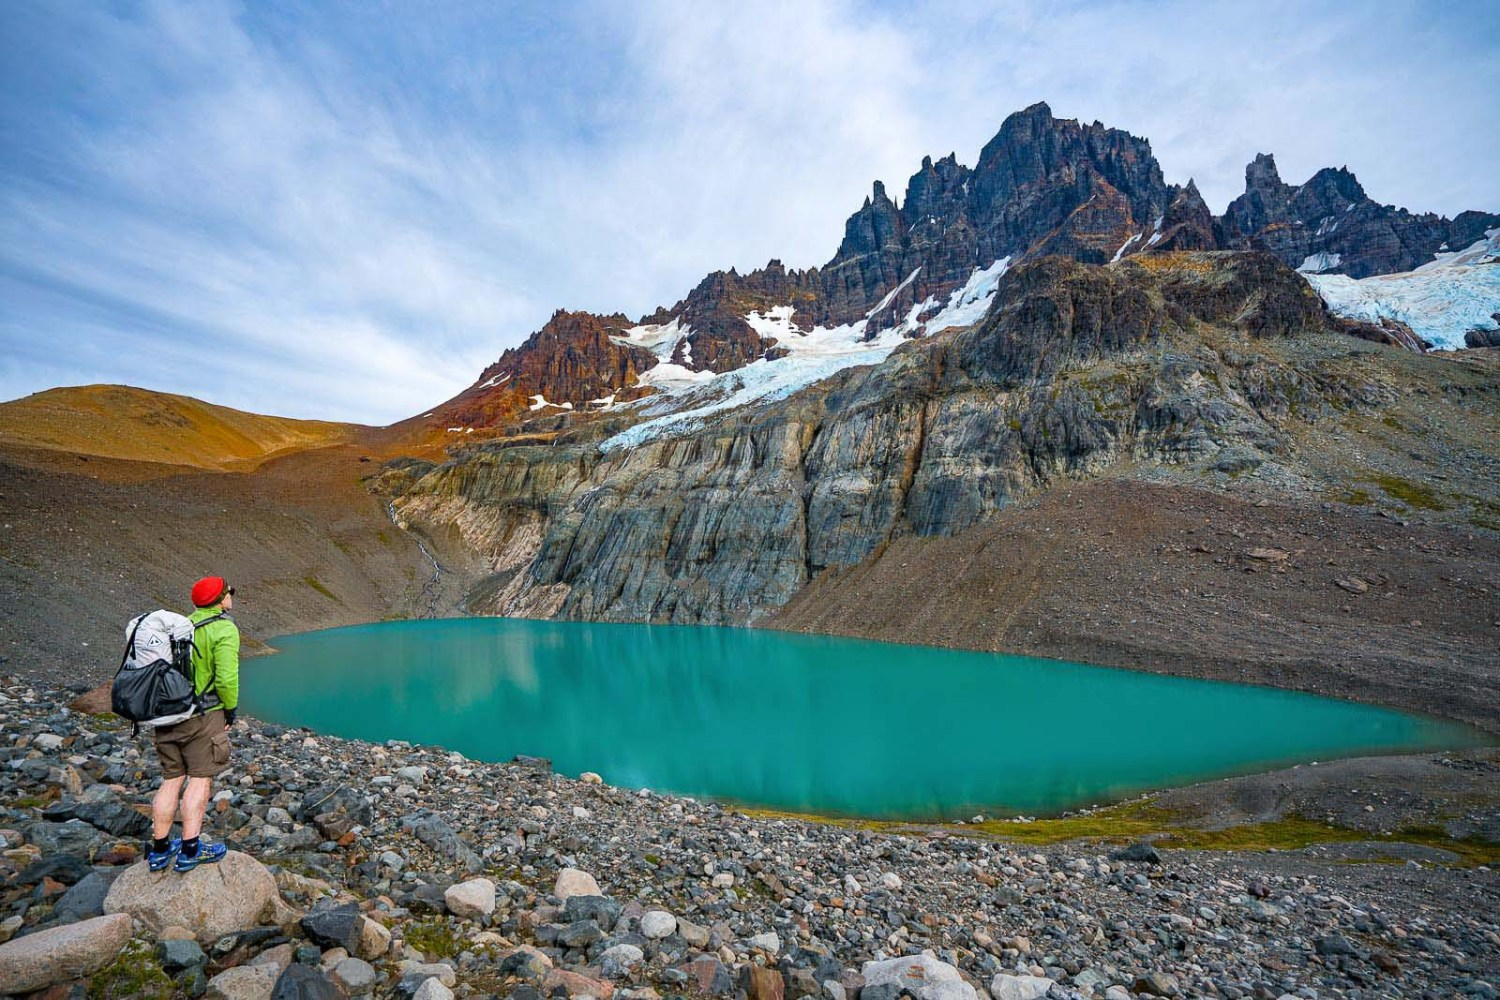 Beautiful mountaintop view with turquoise blue pond